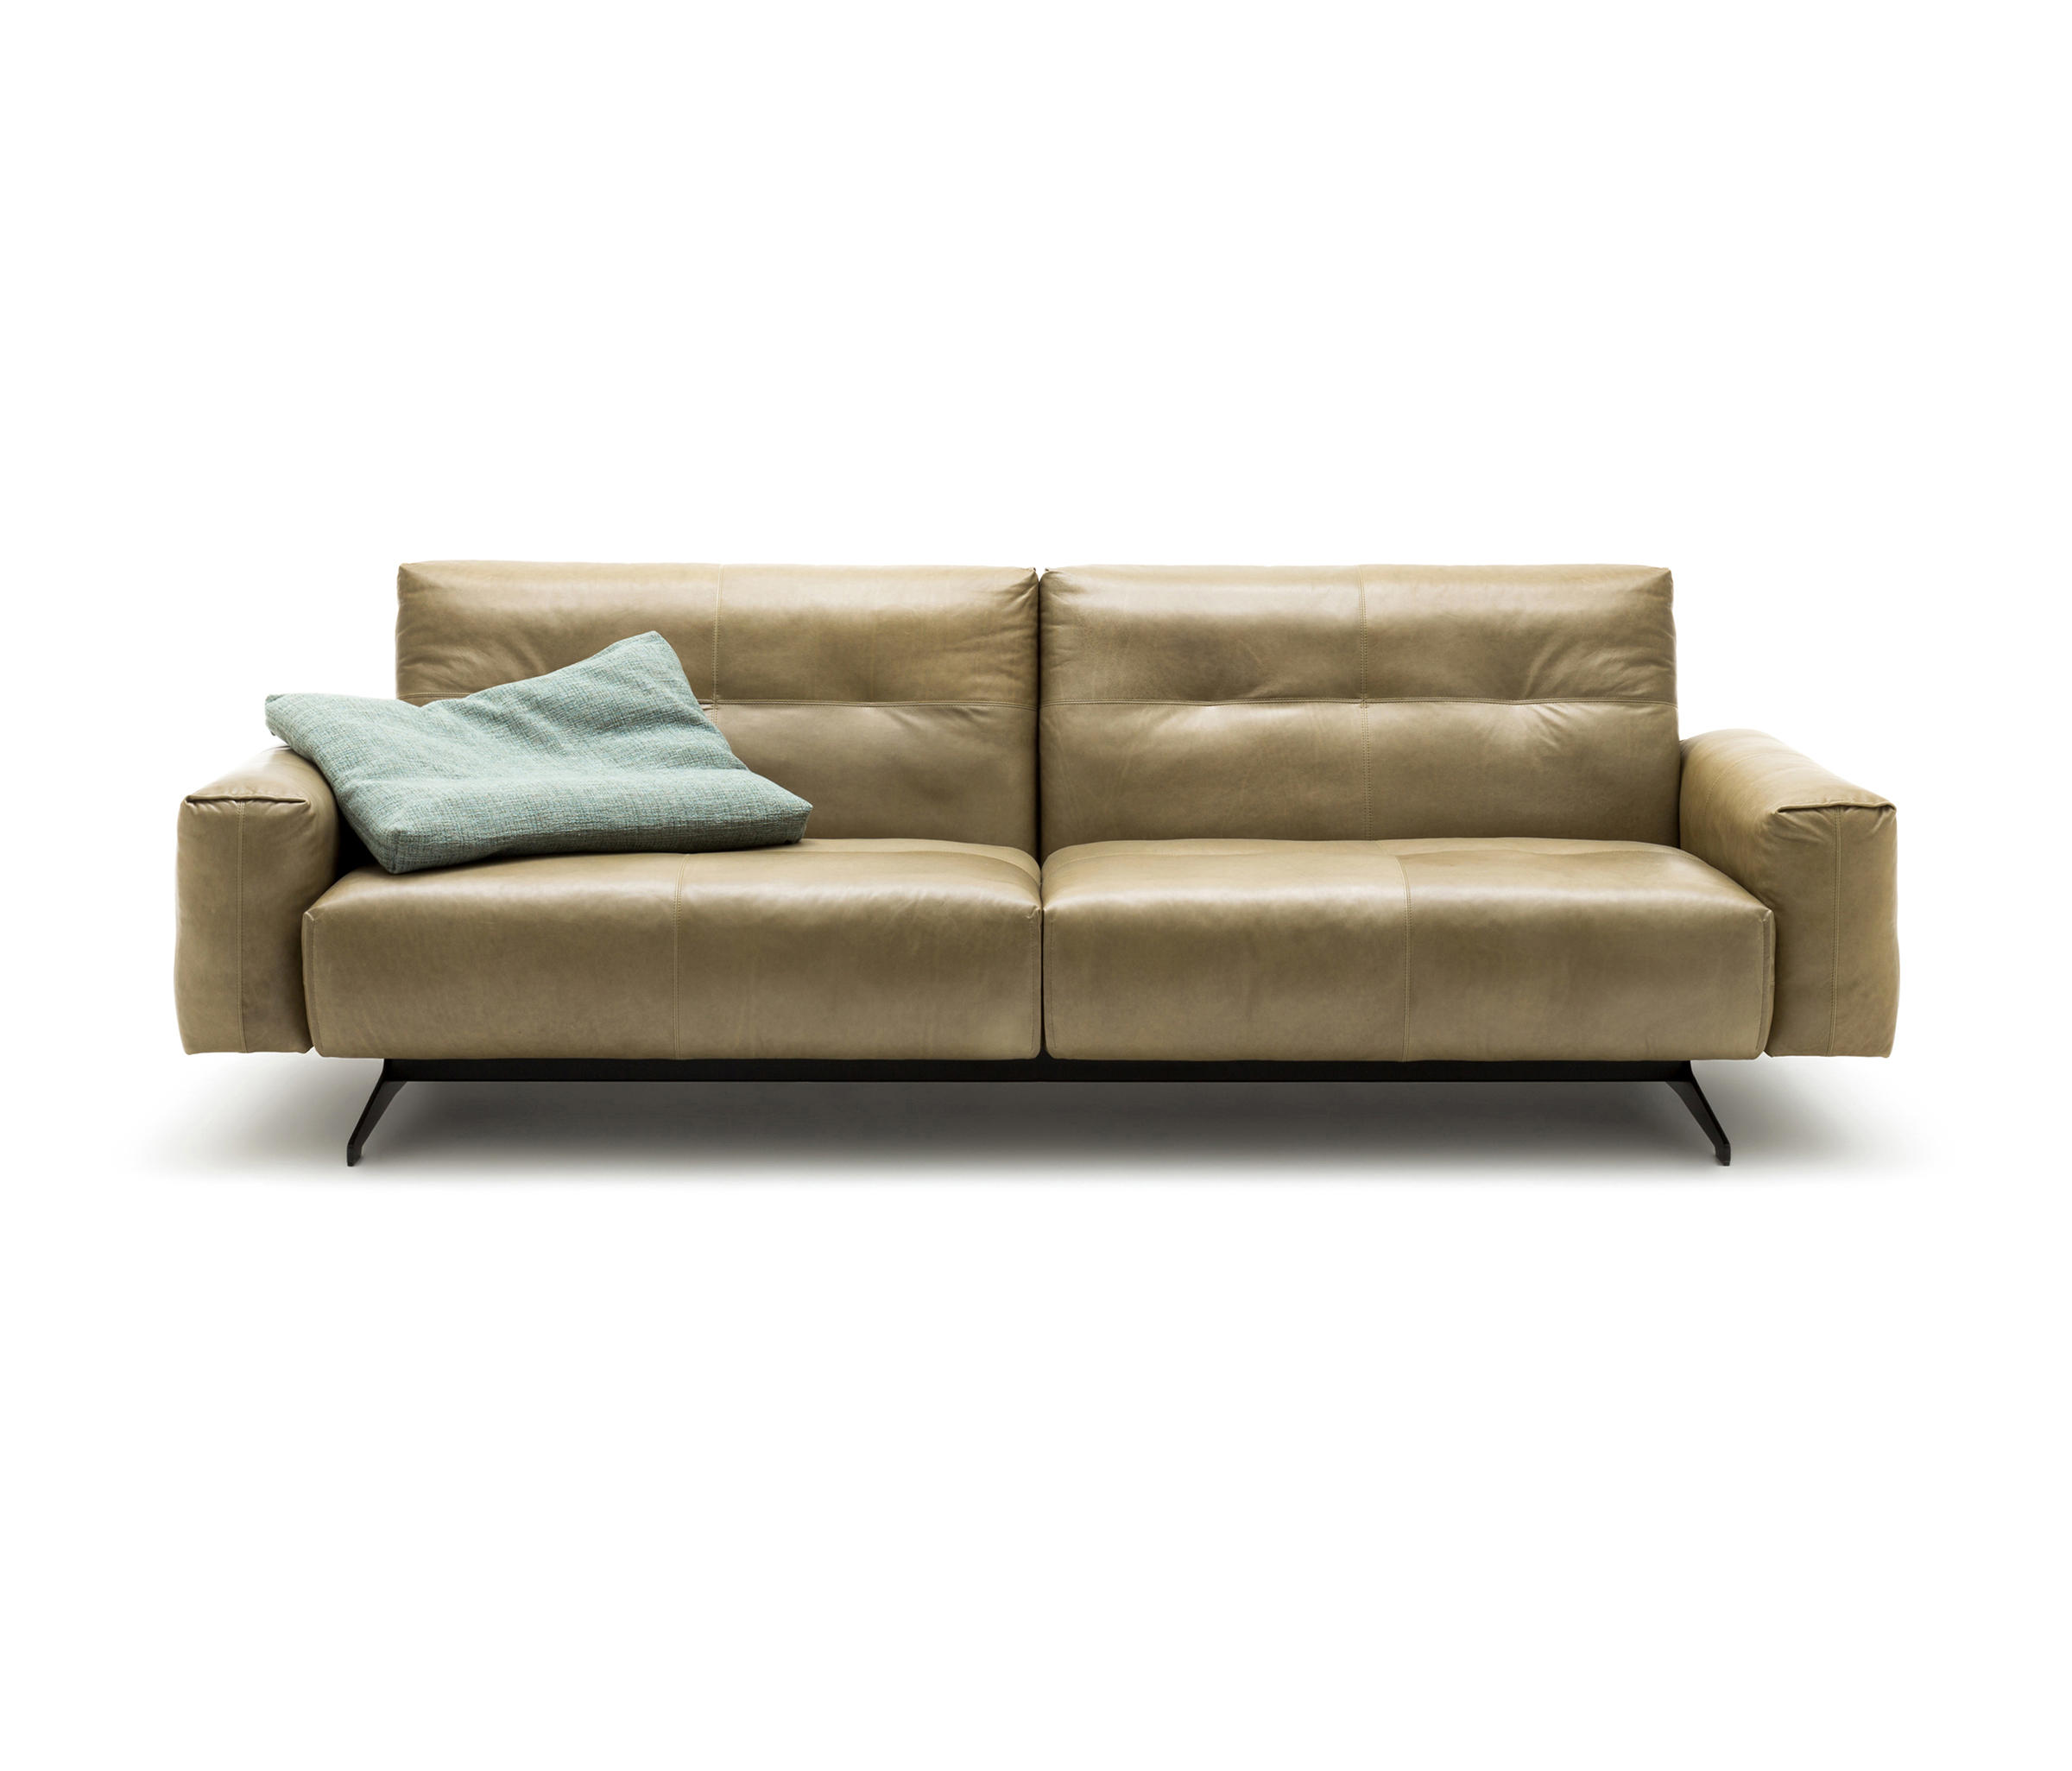 Rolf Benz 50 Sofas From Rolf Benz Architonic